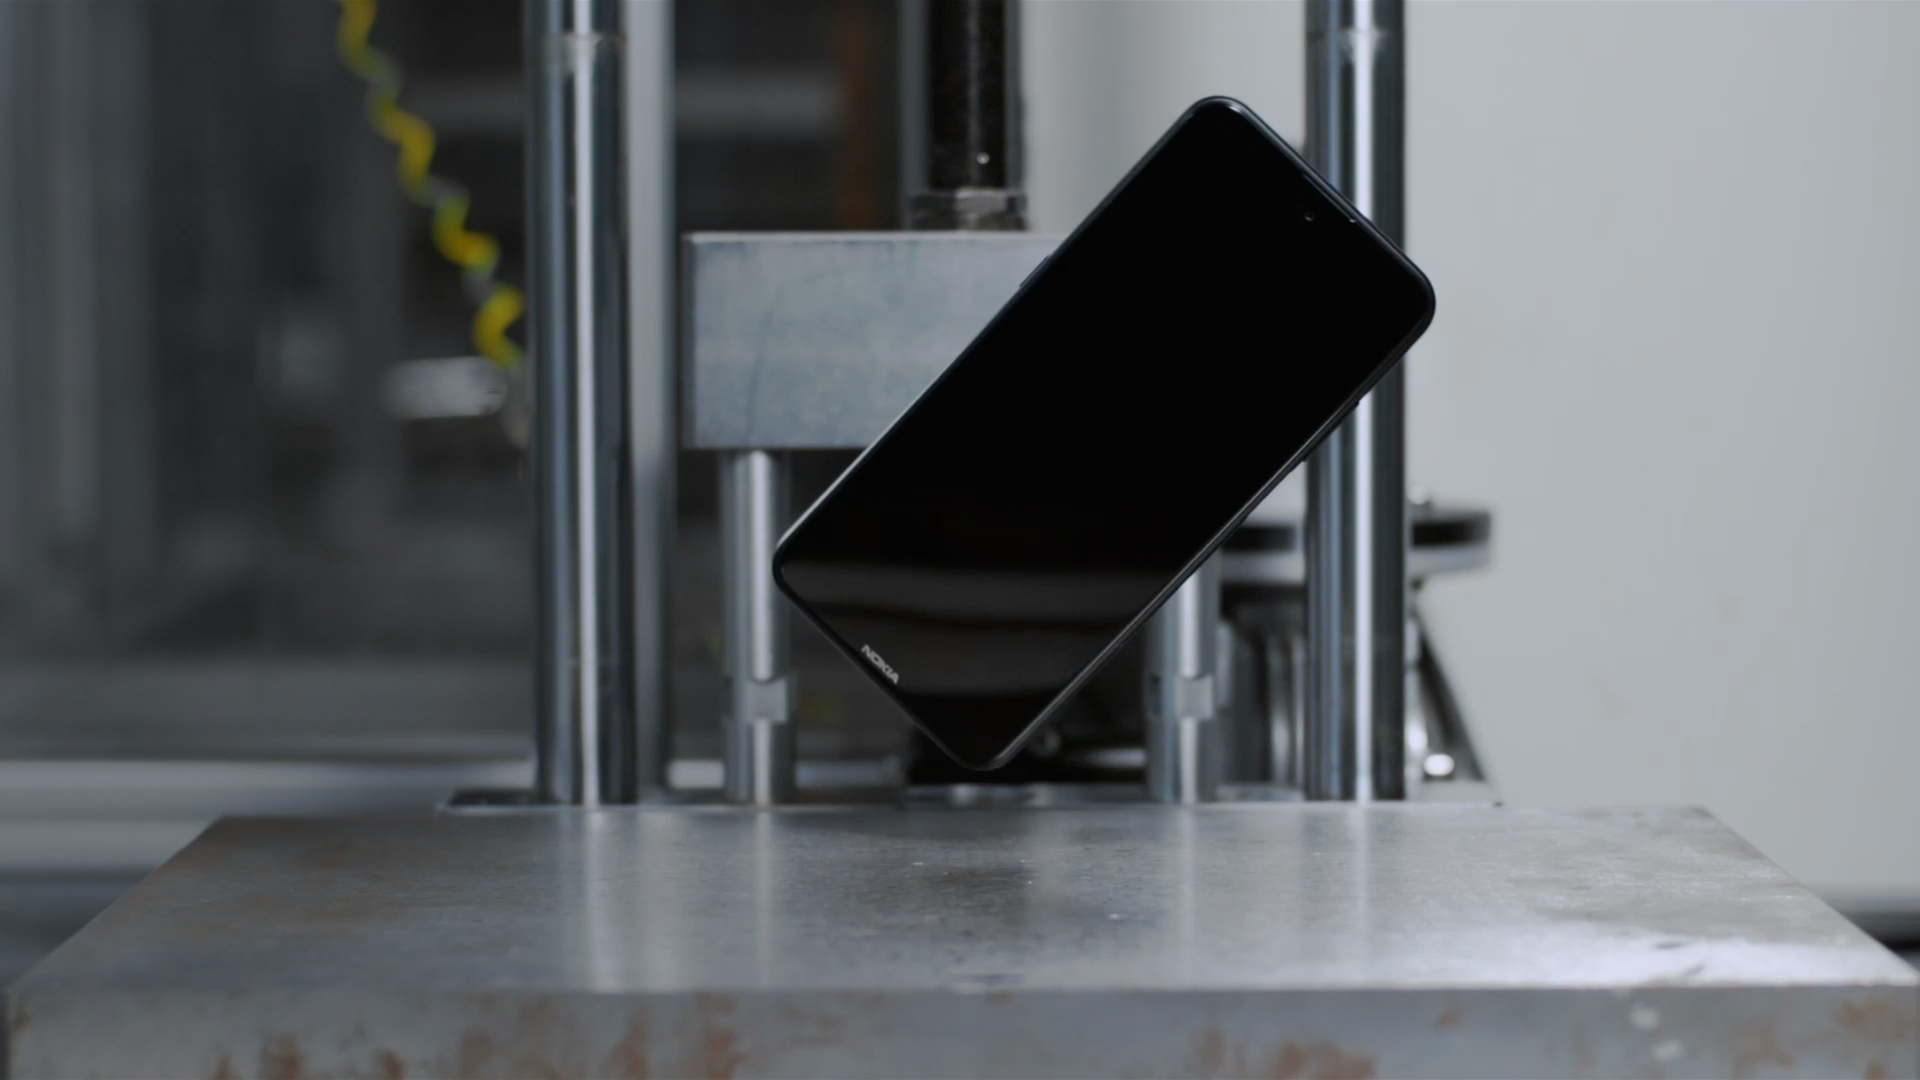 A Nokia smartphone in mid-drop during its vigorous product testing.